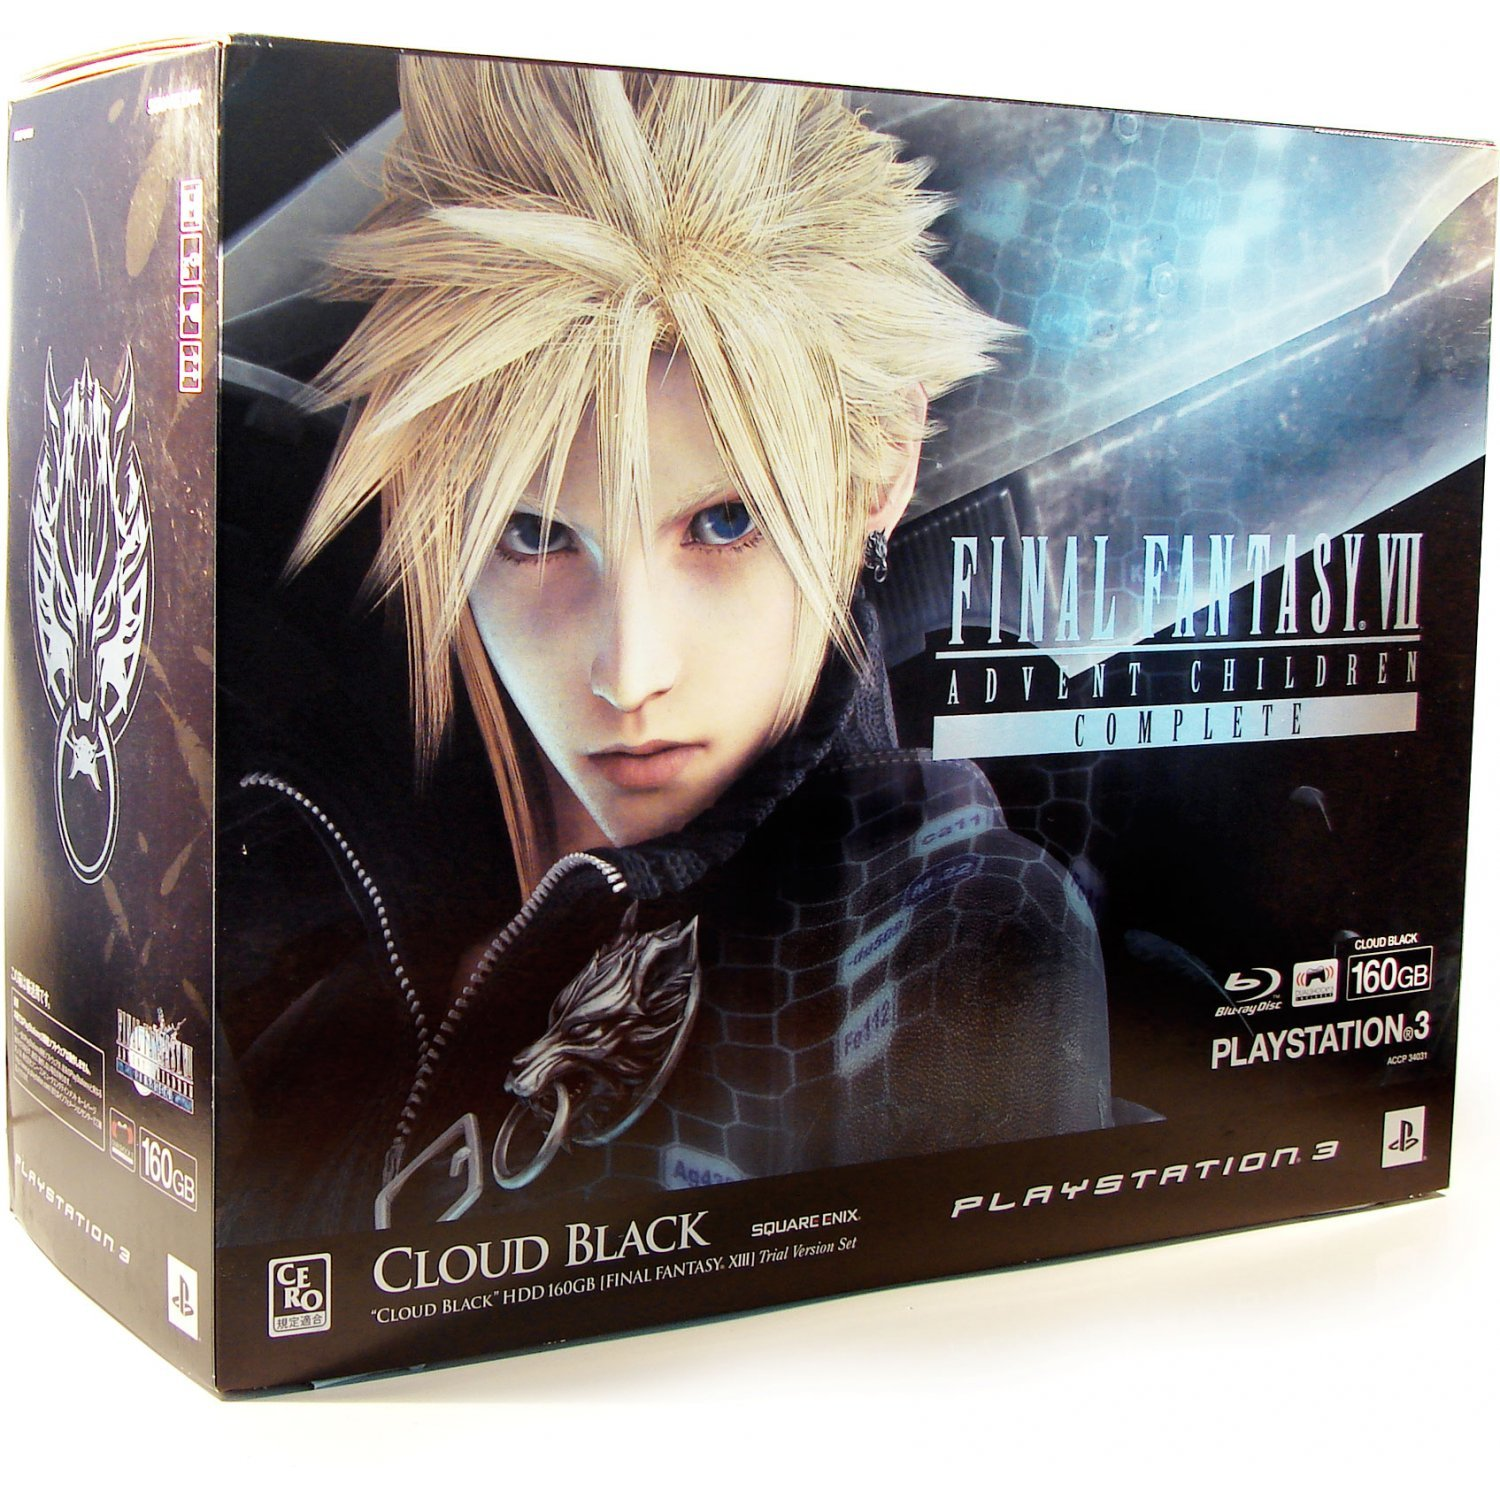 Final Fantasy Vii Advent Children Complete Cloud Black Edition